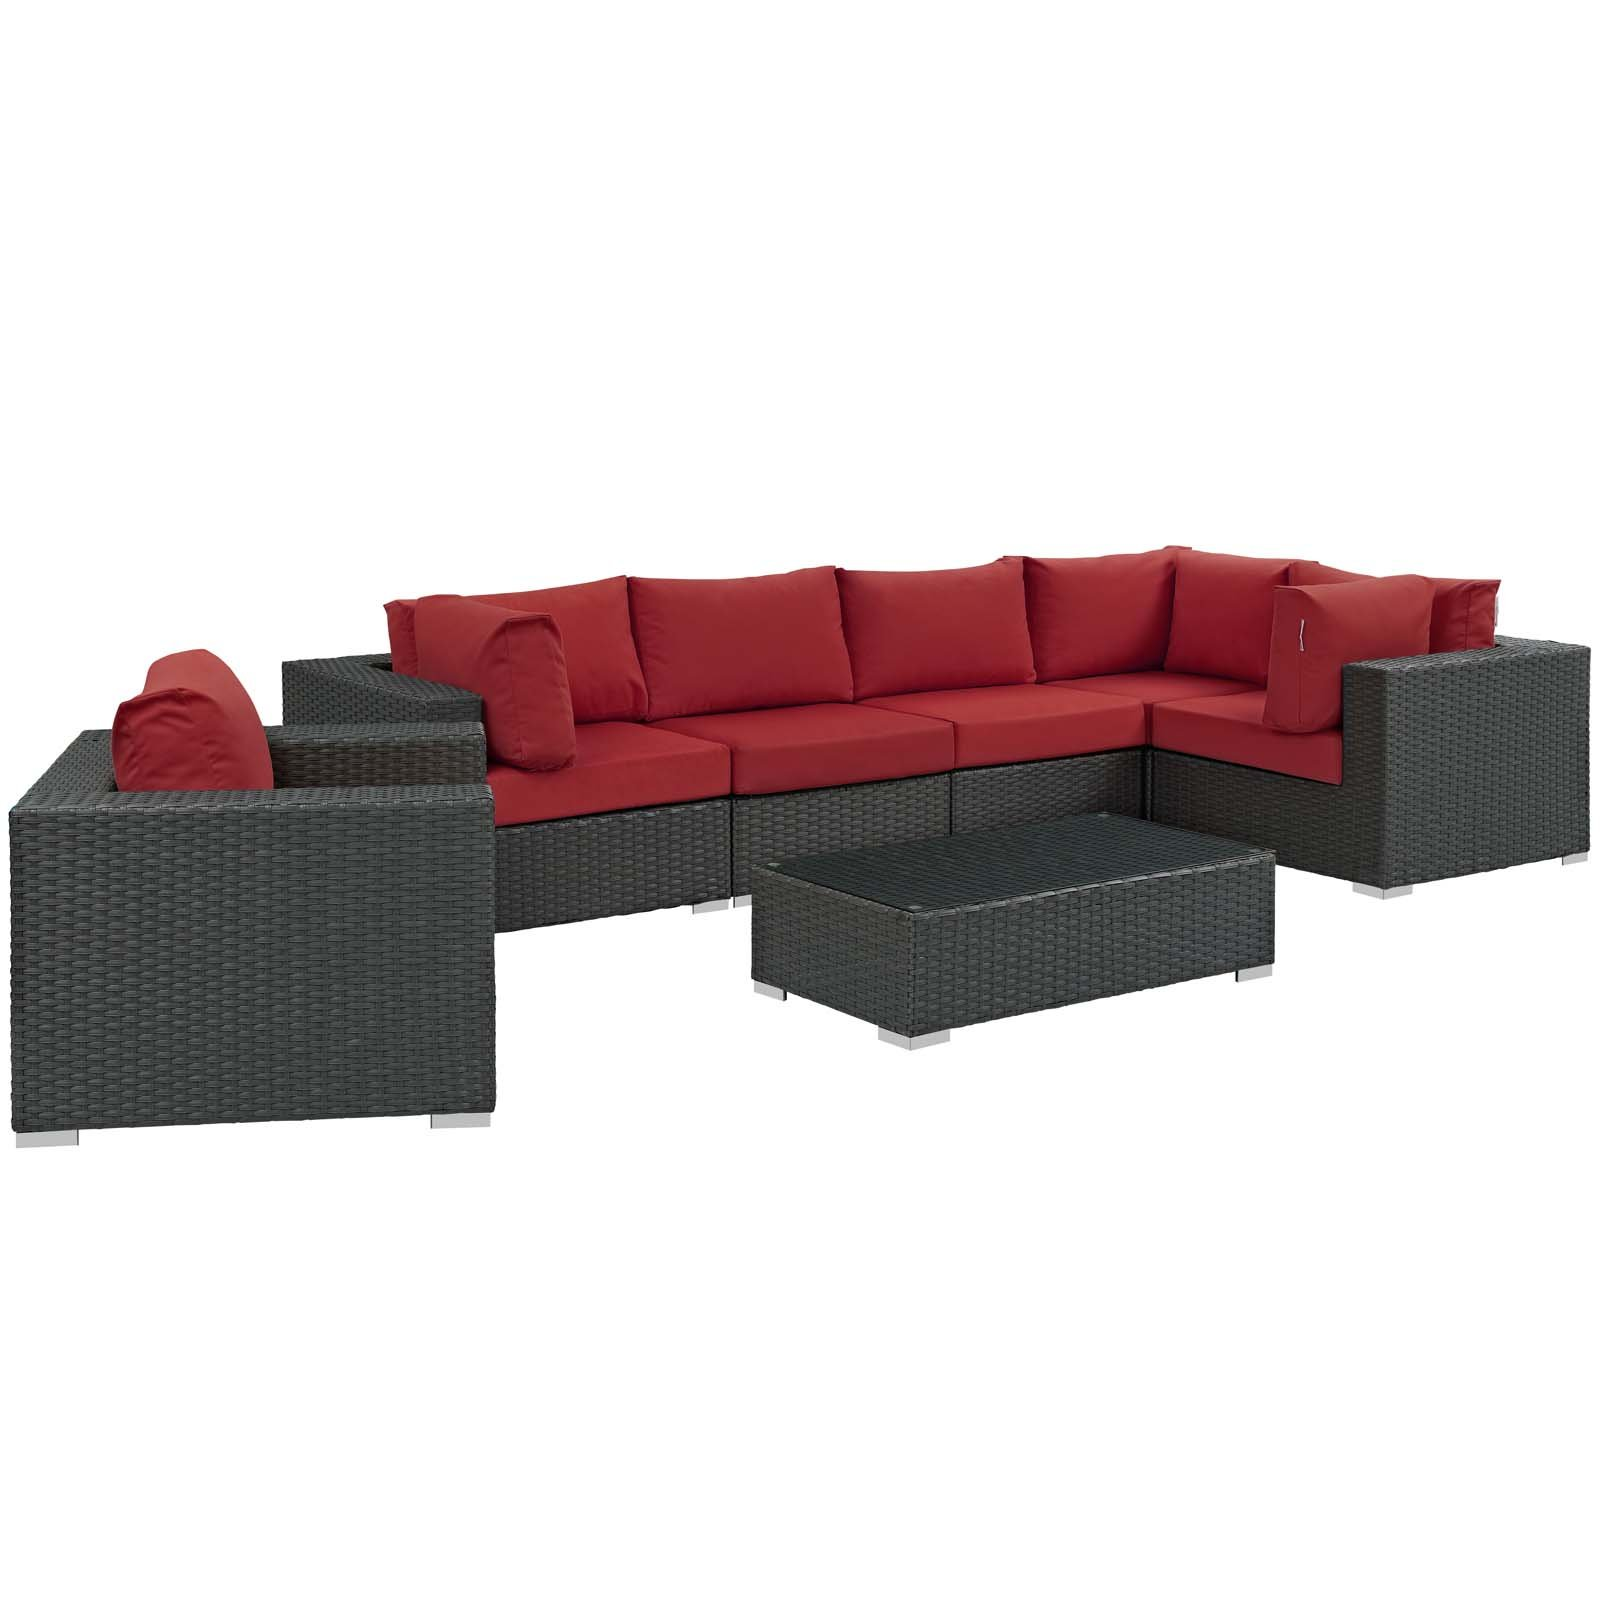 Modway Sojourn Wicker Rattan 7 Piece Outdoor Patio Sunbrella Sectional Set in Canvas Red